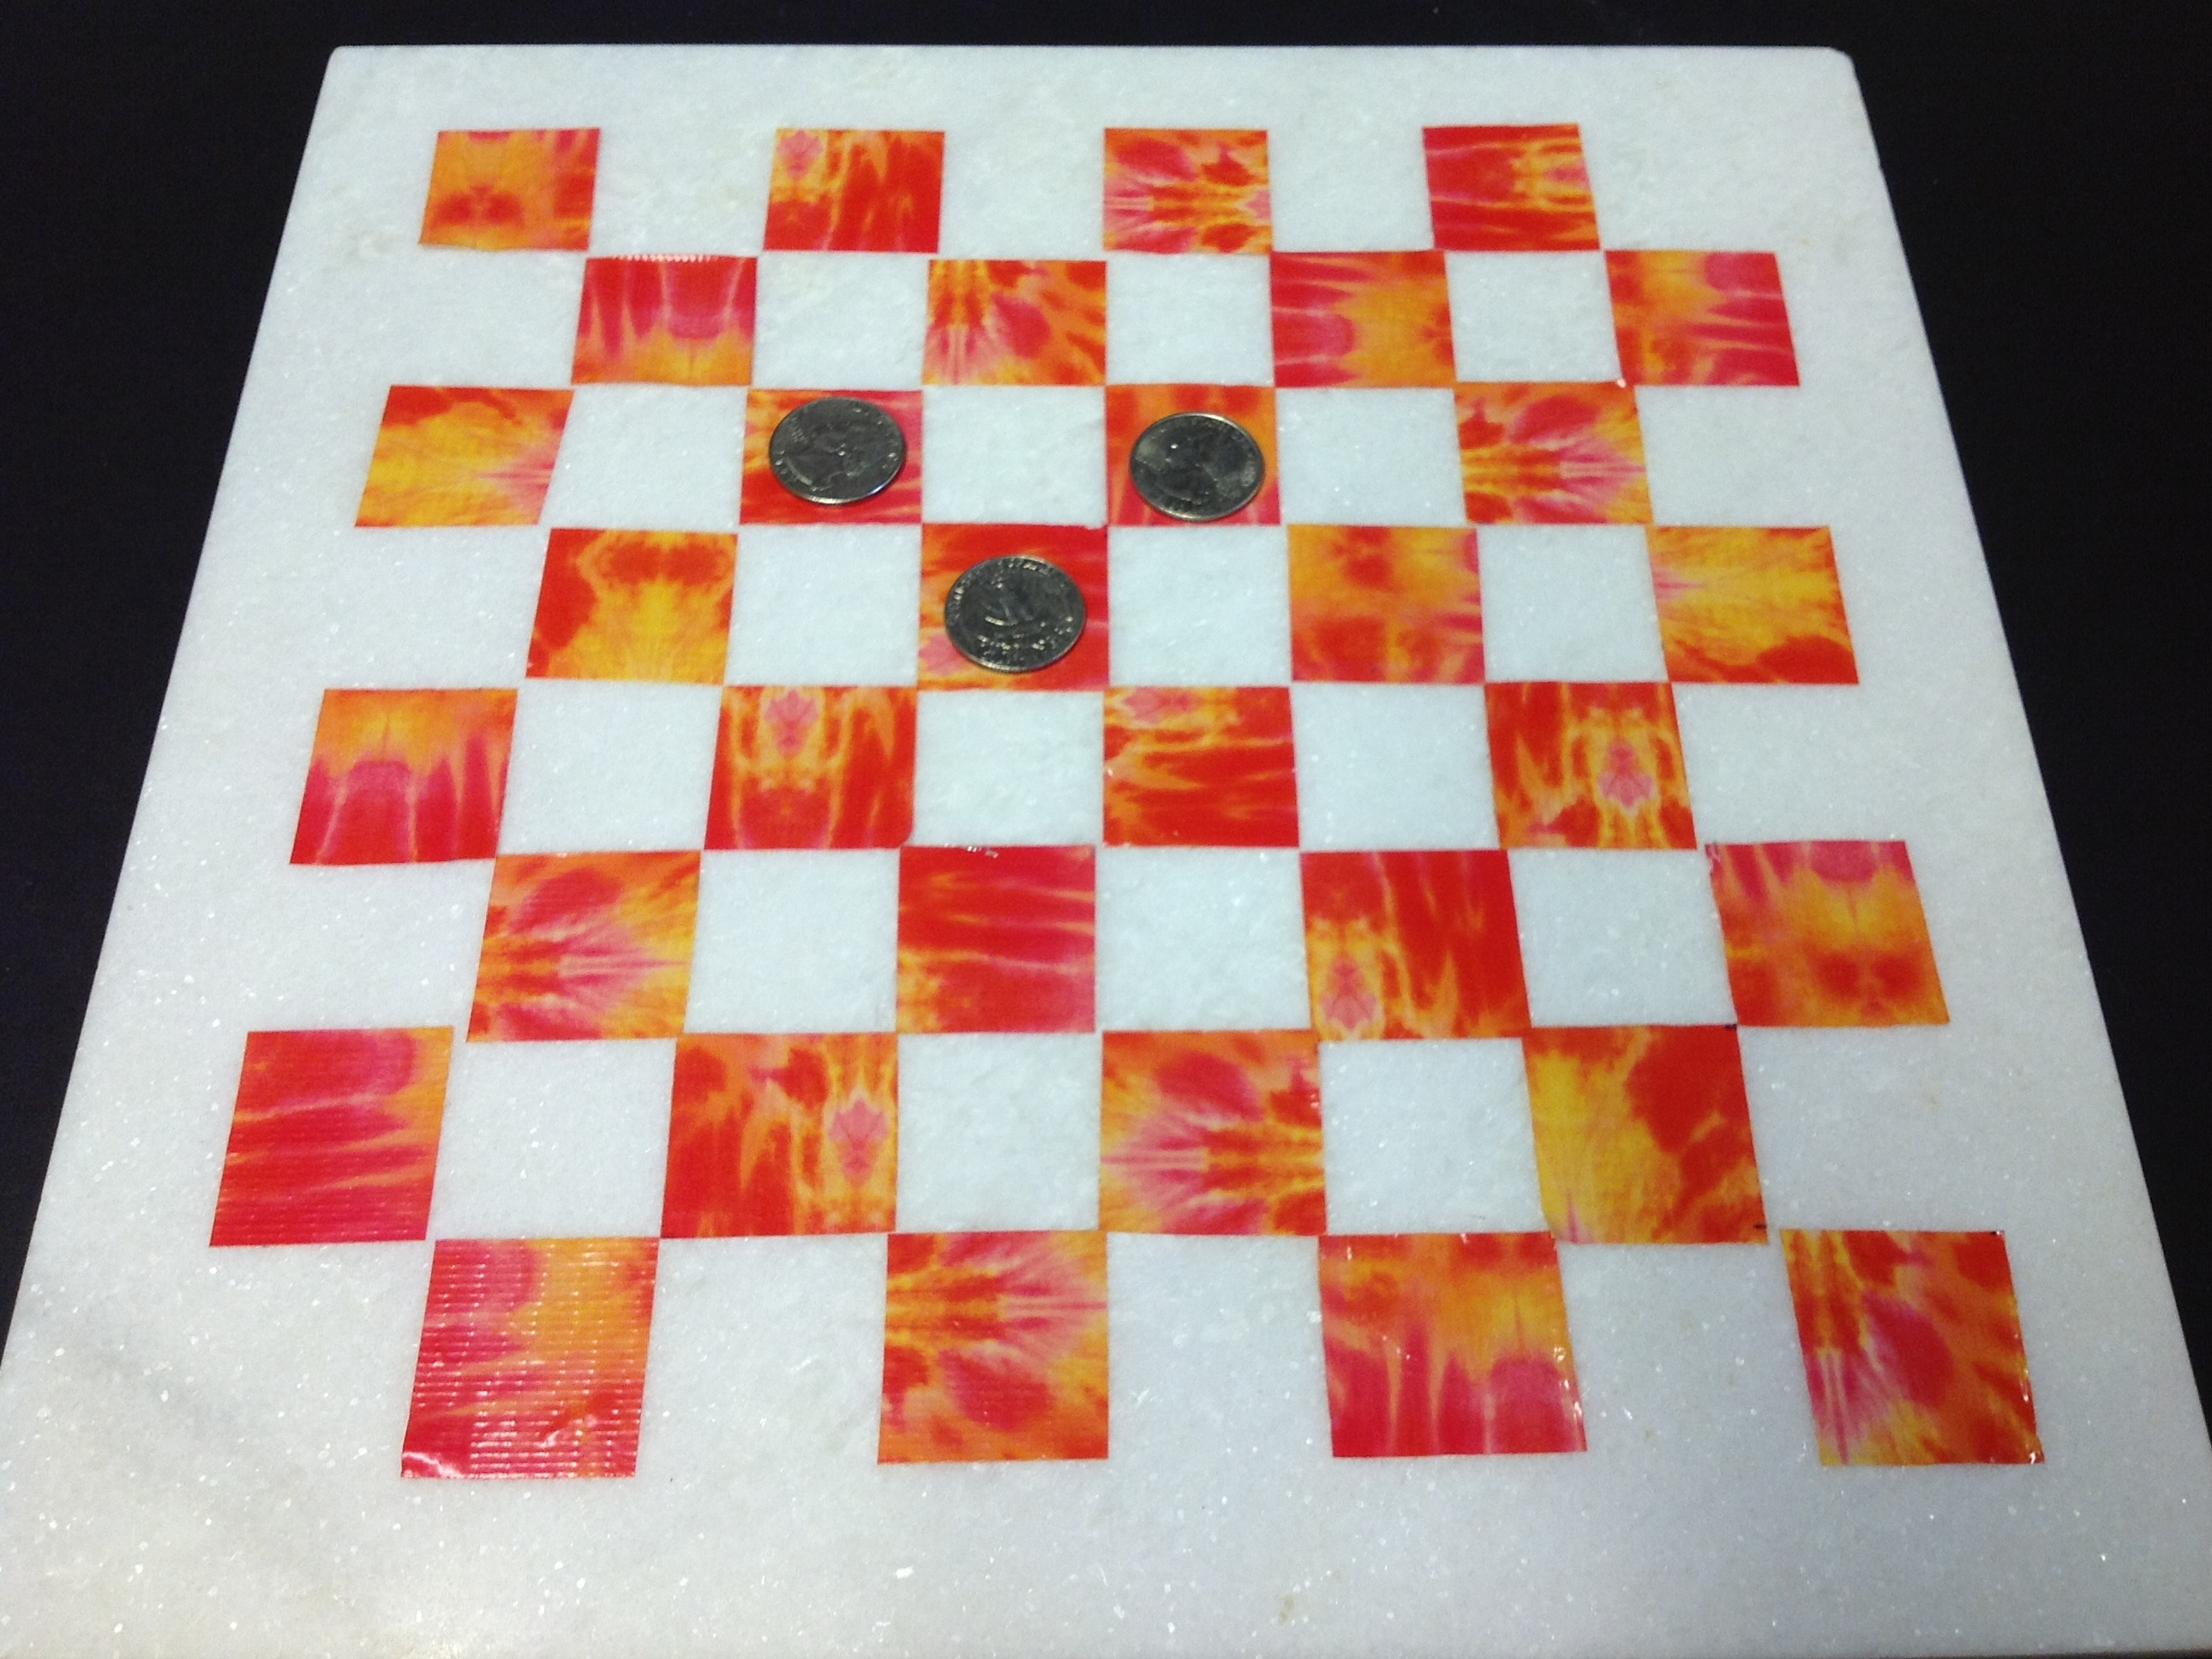 Chess/Checker Board from Tile Remnants